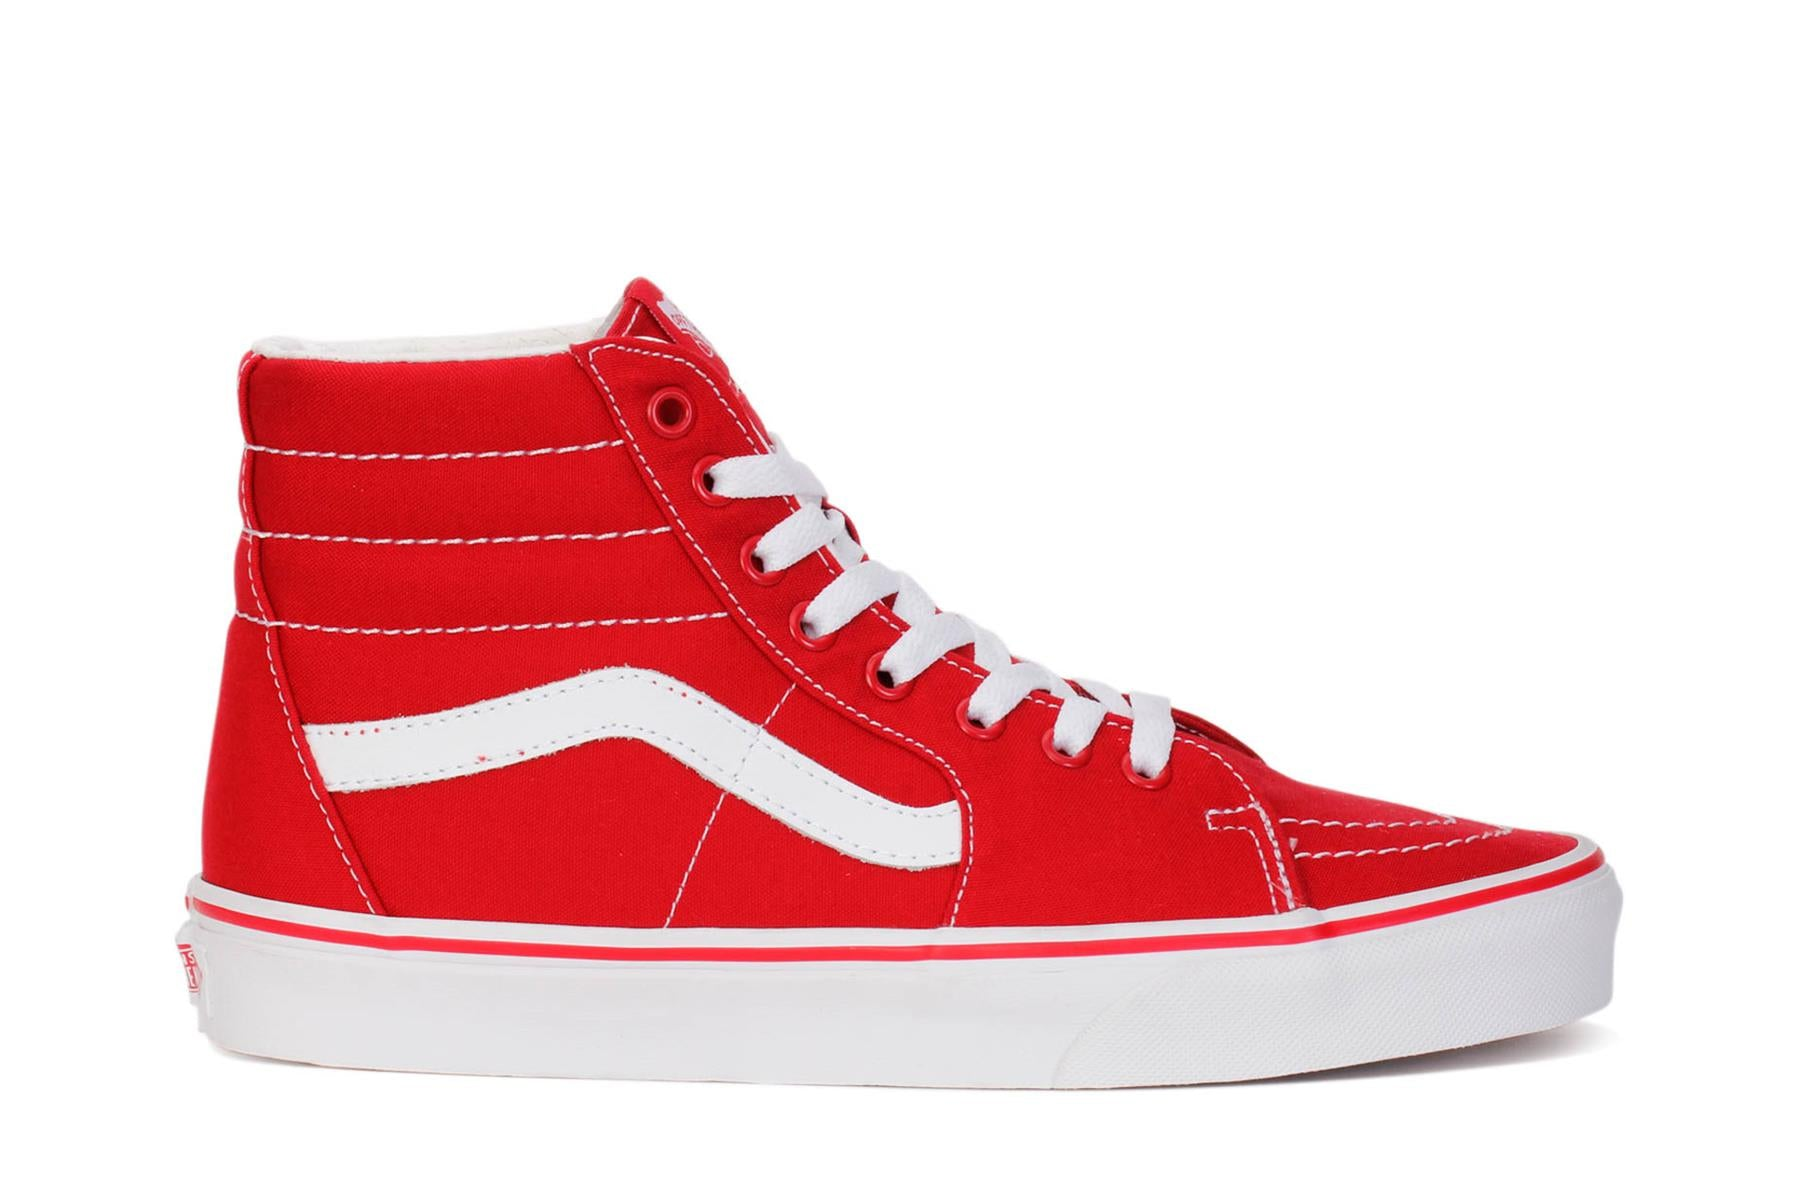 vans-adult-sneakers-sk8-hi-formula-one-canvas-vn000ts9gyk-main